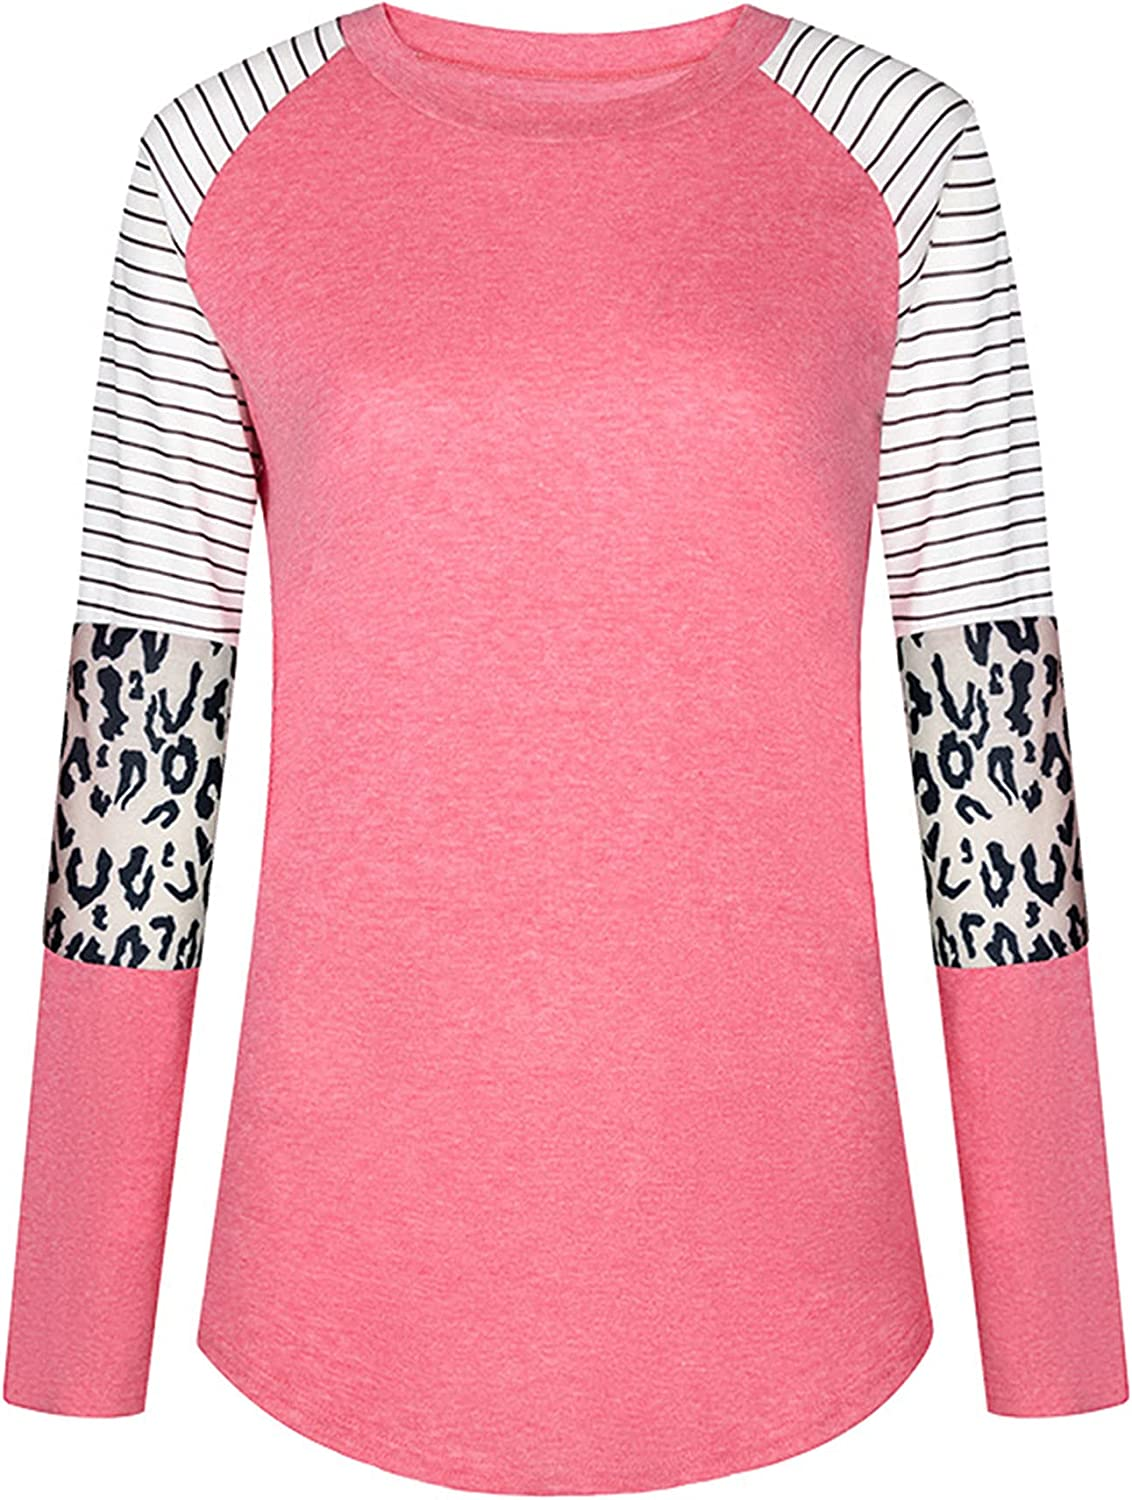 Andongnywell Women's Long Sleeve Leopard Contrast Color Block Tunic Comfy Stripe Round Neck T Shirt Tops